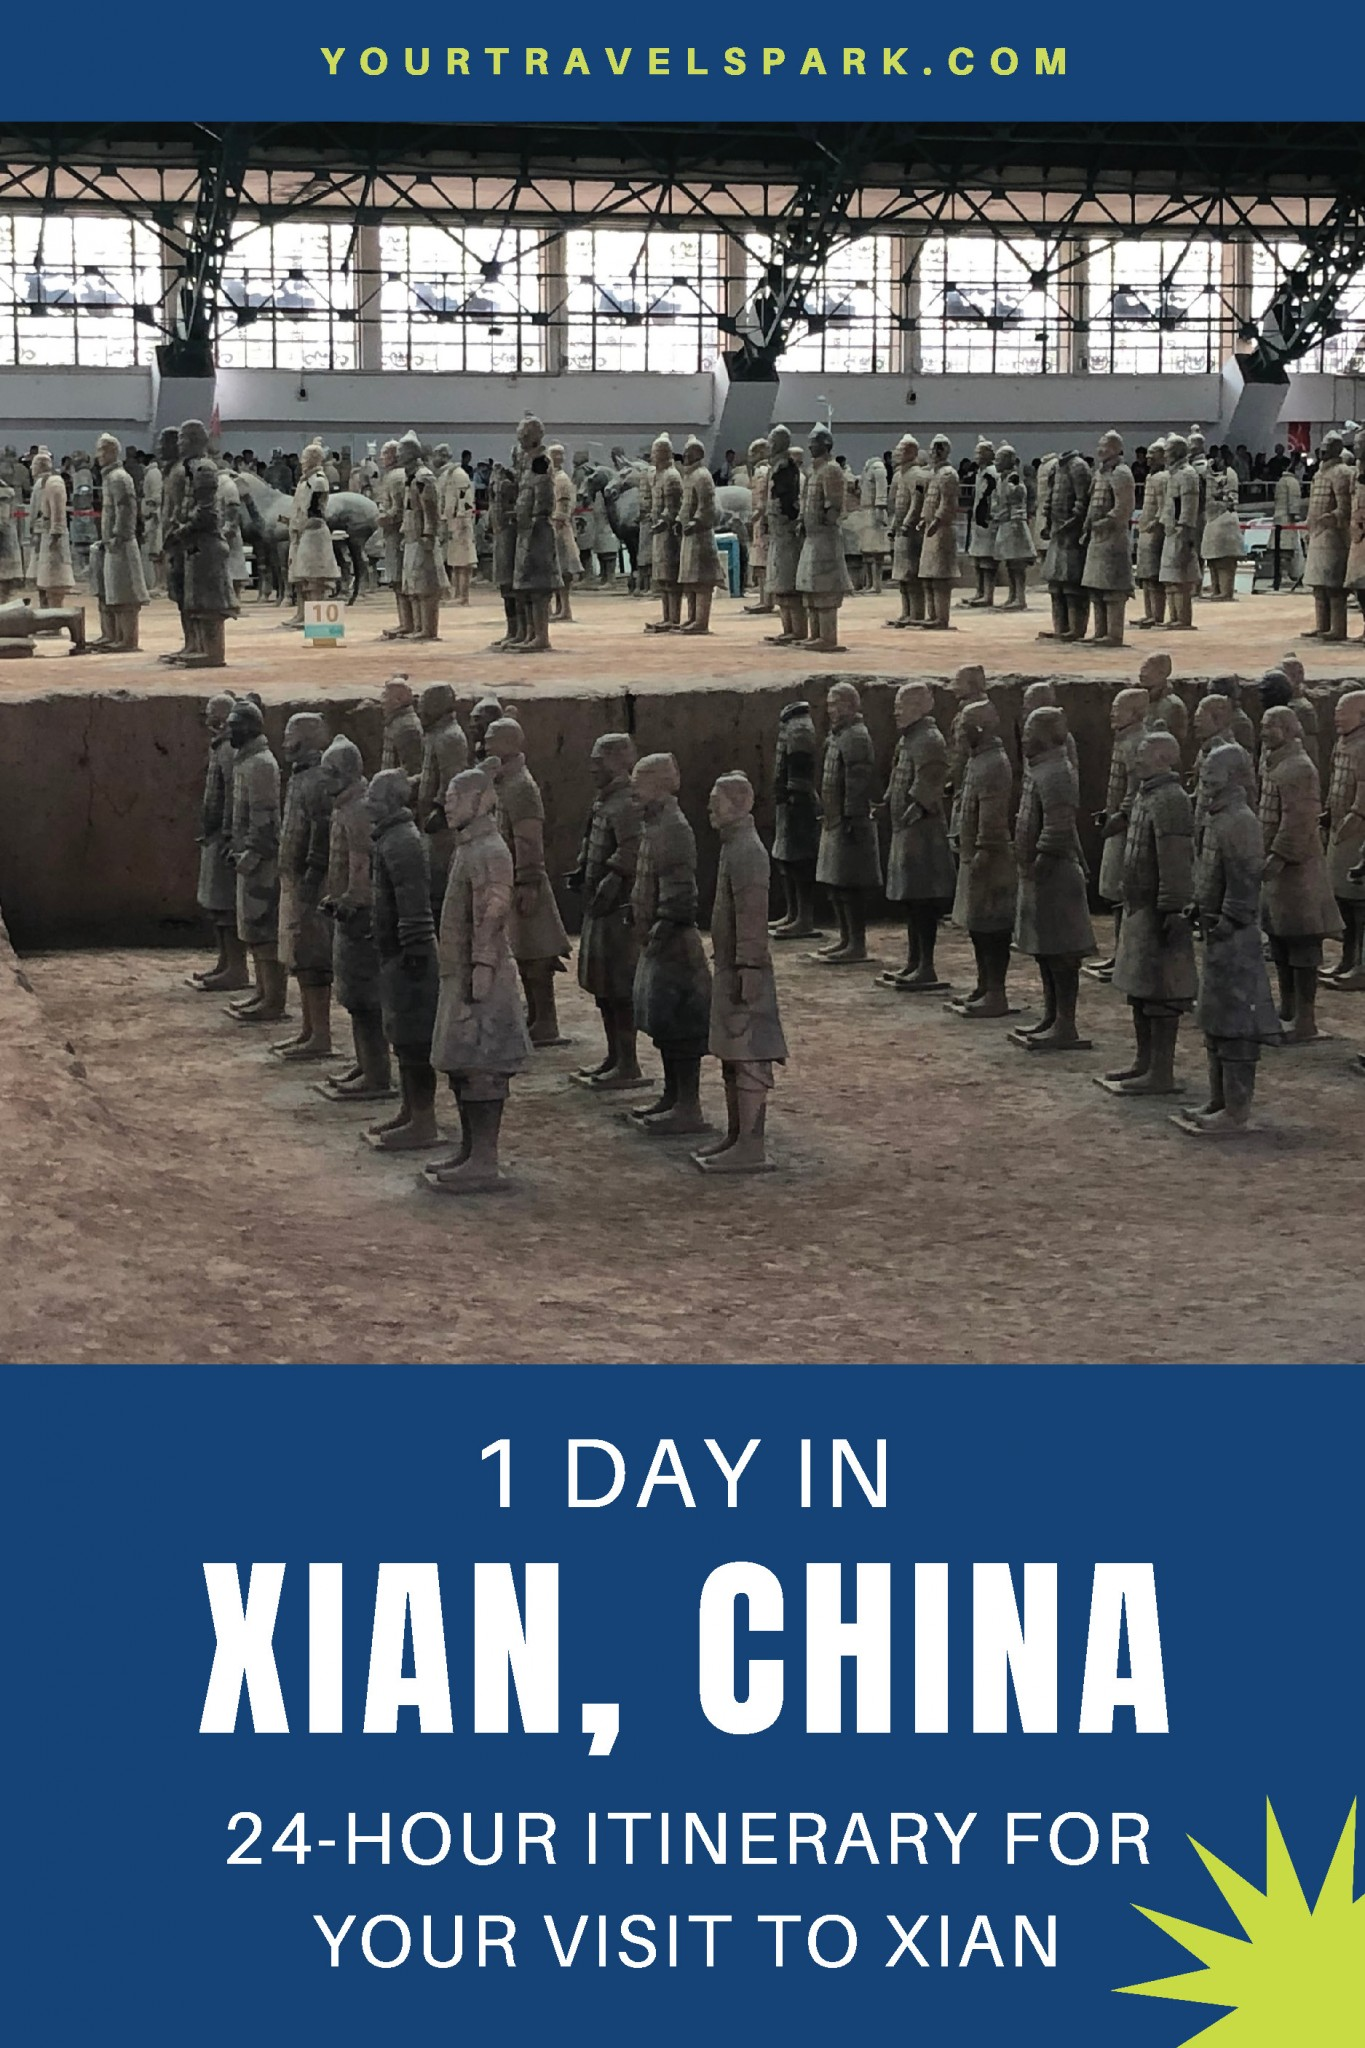 One day in Xian, China, including the Xian Muslim Market, Terracotta Soldiers, the Xian City Wall, and everything else you need to know if you're visiting Xian, China. #xian #xianchina #china #visitxian #visitingxian #visitxianchina #visitingxianchina #visitchina #visitingchina #terracottasoldiers #terracottawarriors #muslimmarket #xianmuslimmarket #xiancitywall #citywall #bikingthexiancitywall